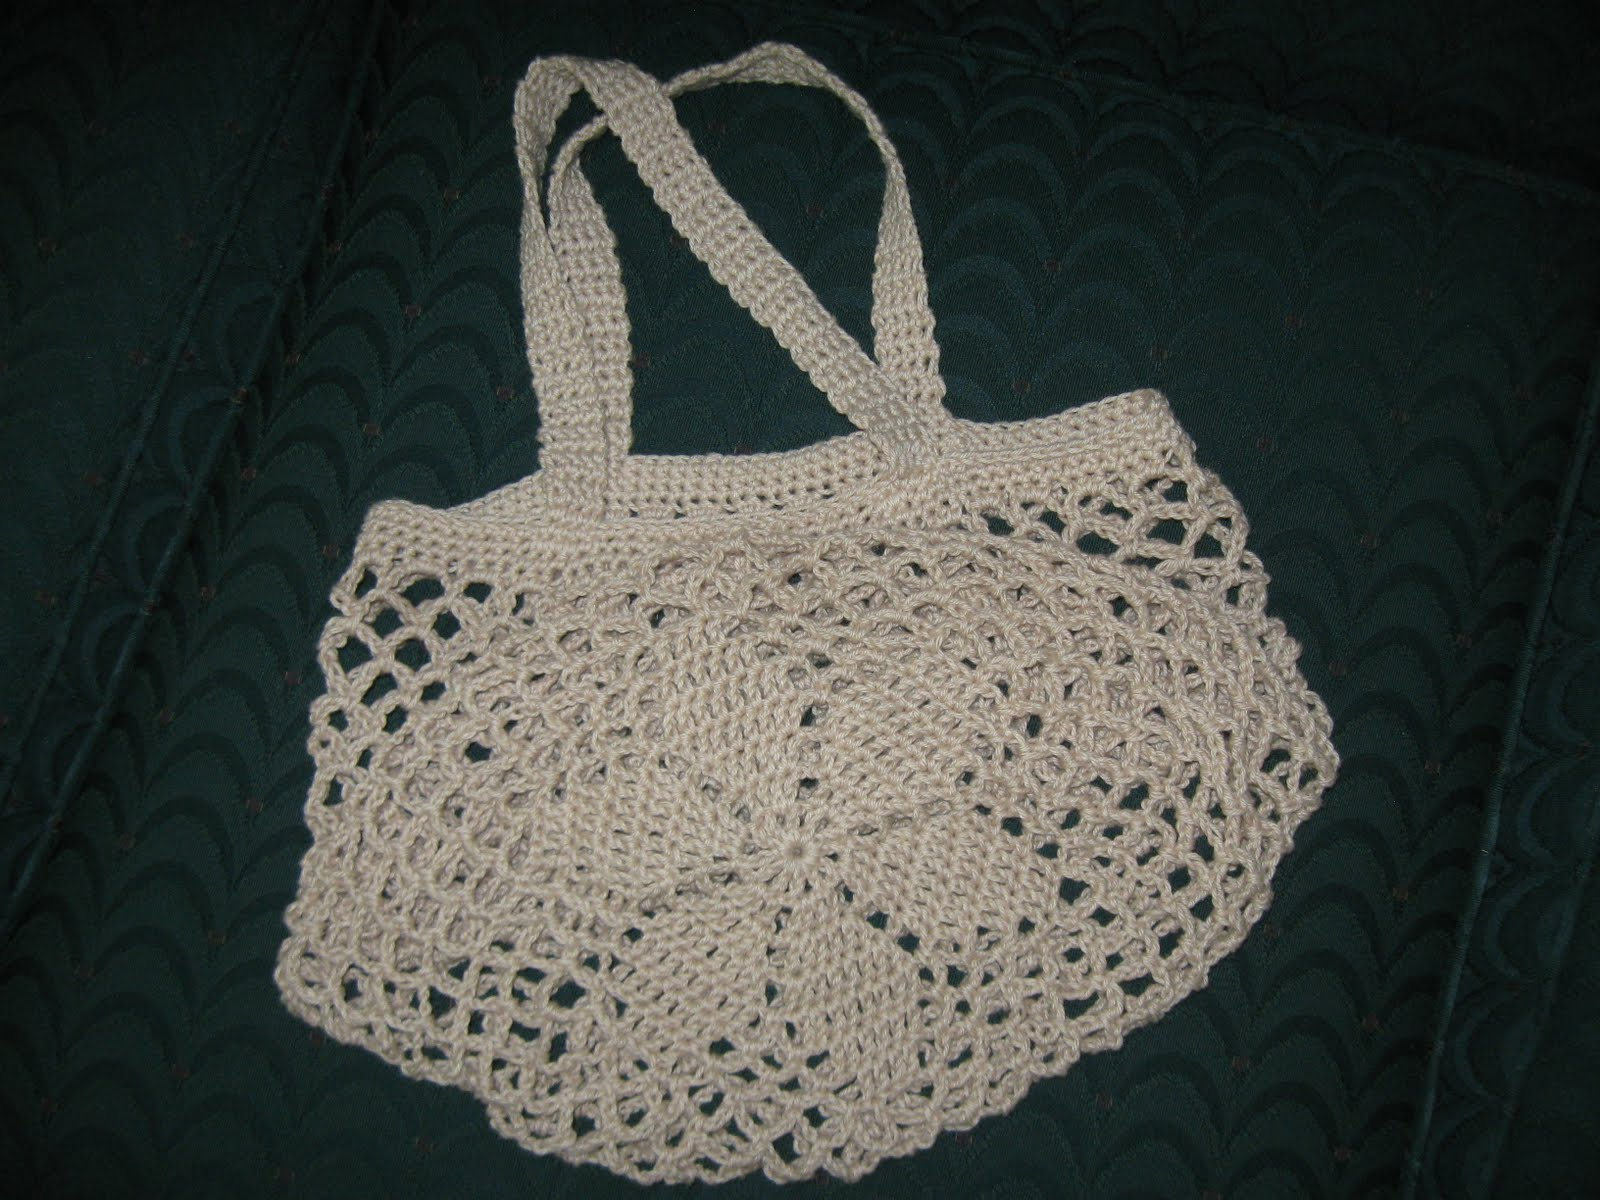 String Bag Crochet Pattern : You *can* knit with a lightsaber!: Crochet Flower Motif String Bag